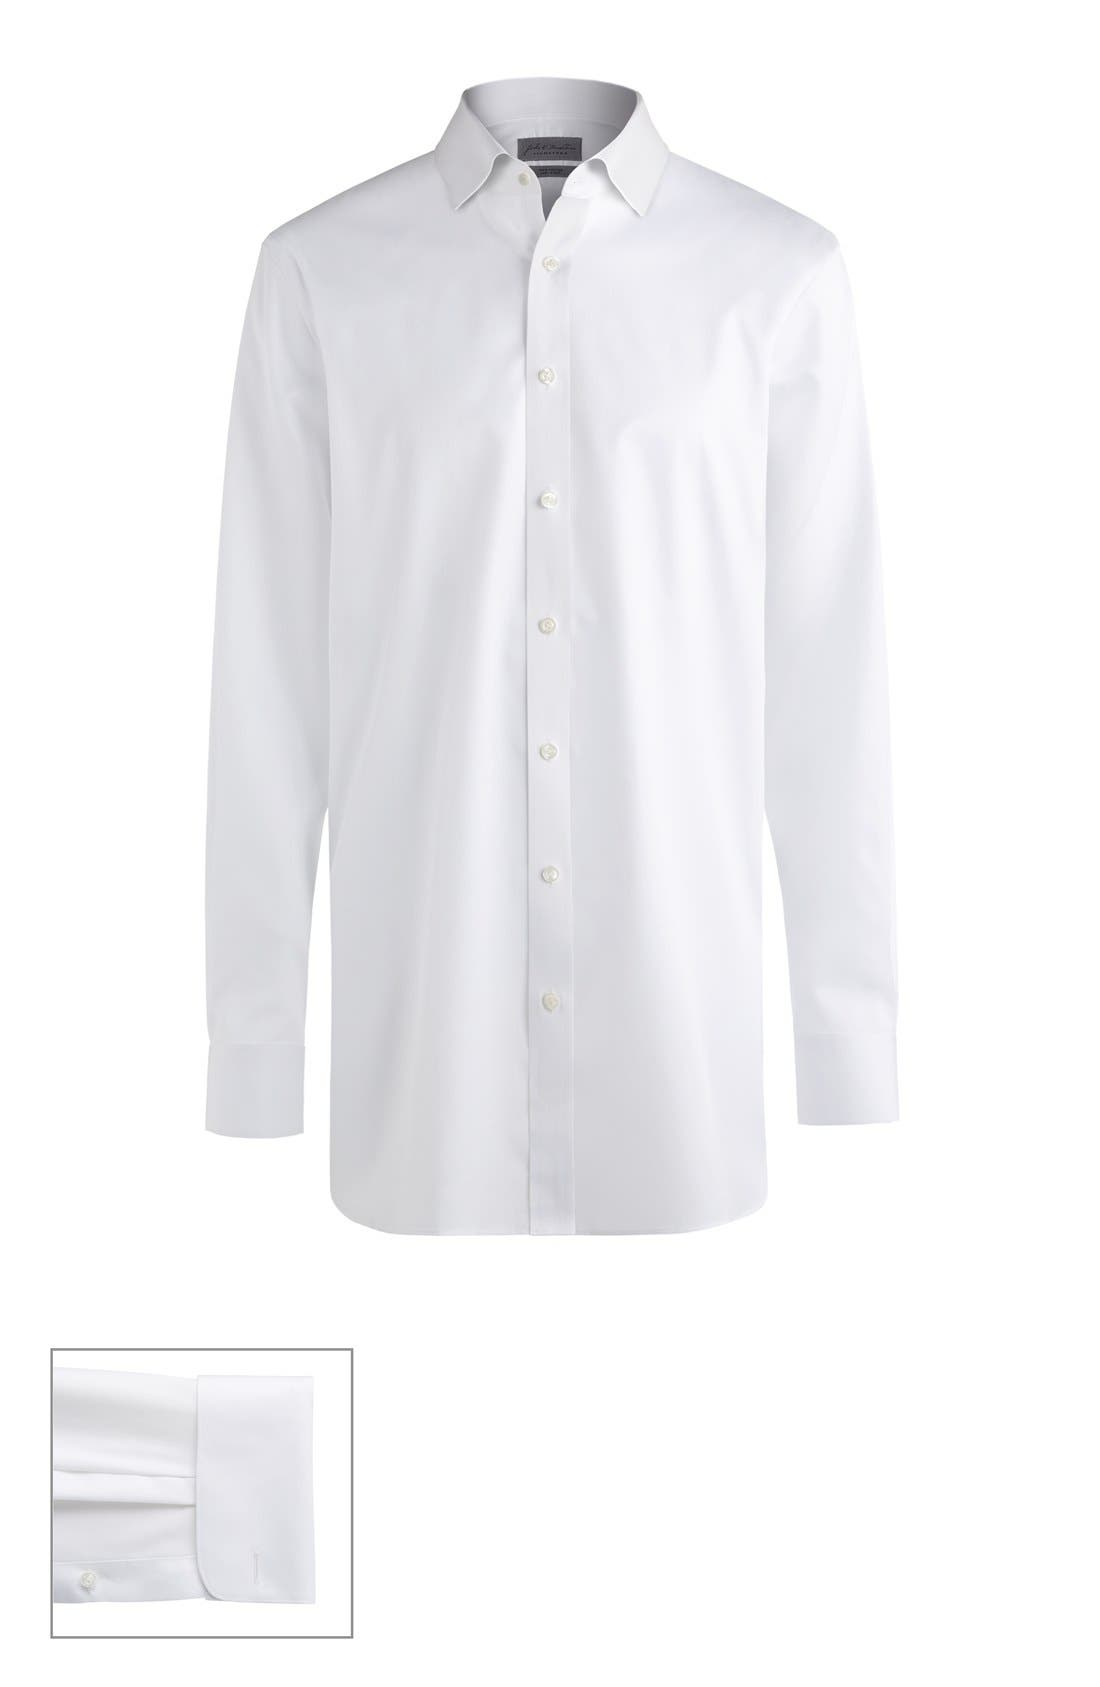 JOHN W. NORDSTROM<SUP>®</SUP>, Made to Measure Extra Trim Fit Short Spread Collar Solid Dress Shirt, Main thumbnail 1, color, WHITE FINE TWILL